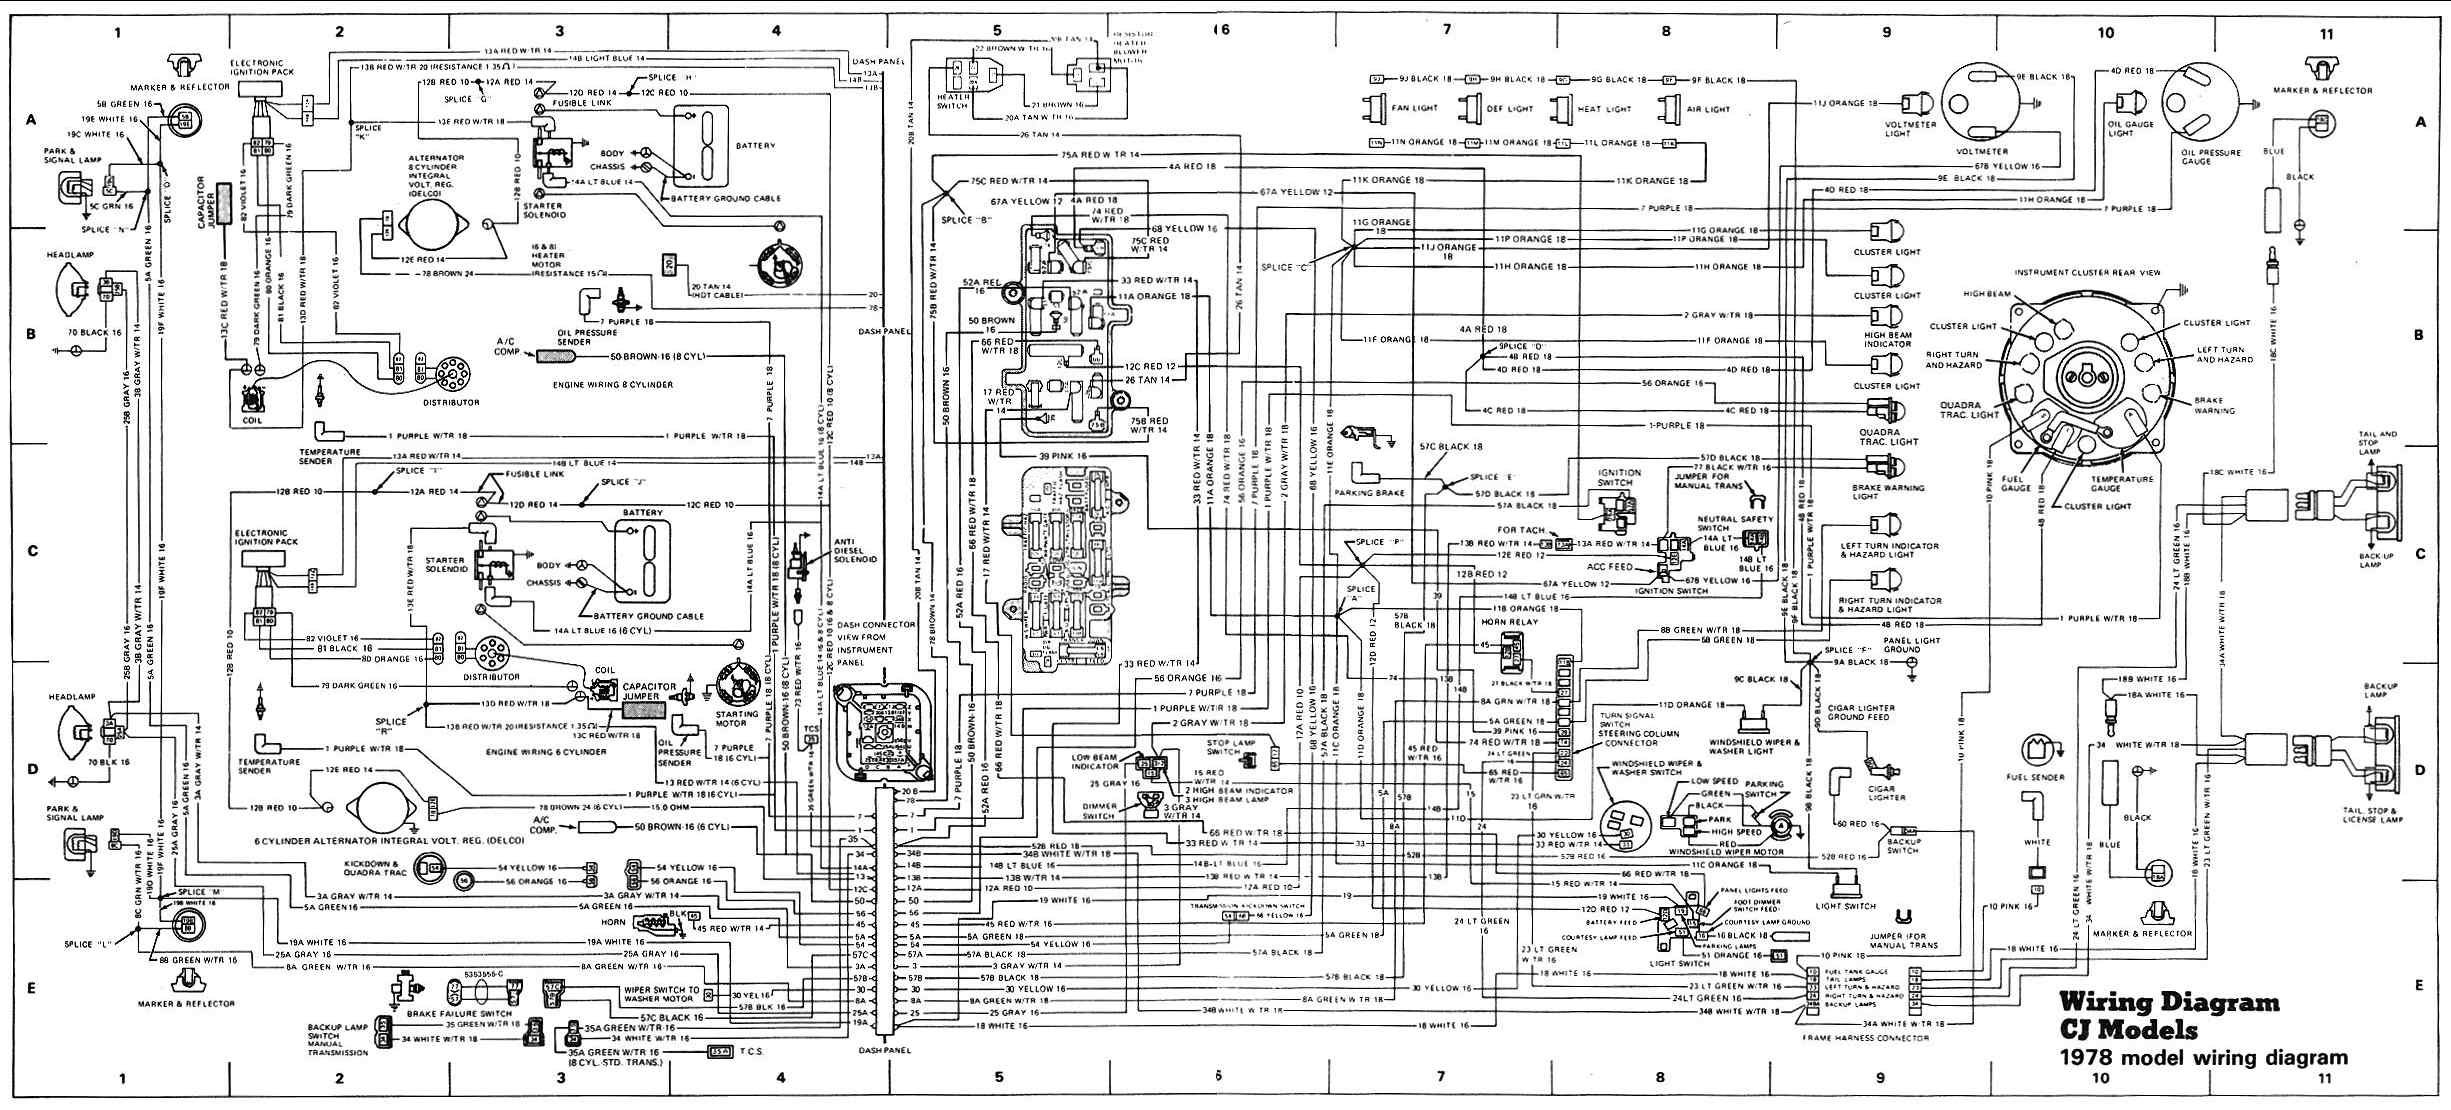 wiring diagram of 1978 jeep cj models?t=1508490323 jeep car manuals, wiring diagrams pdf & fault codes saab 93 wiring diagram download at alyssarenee.co